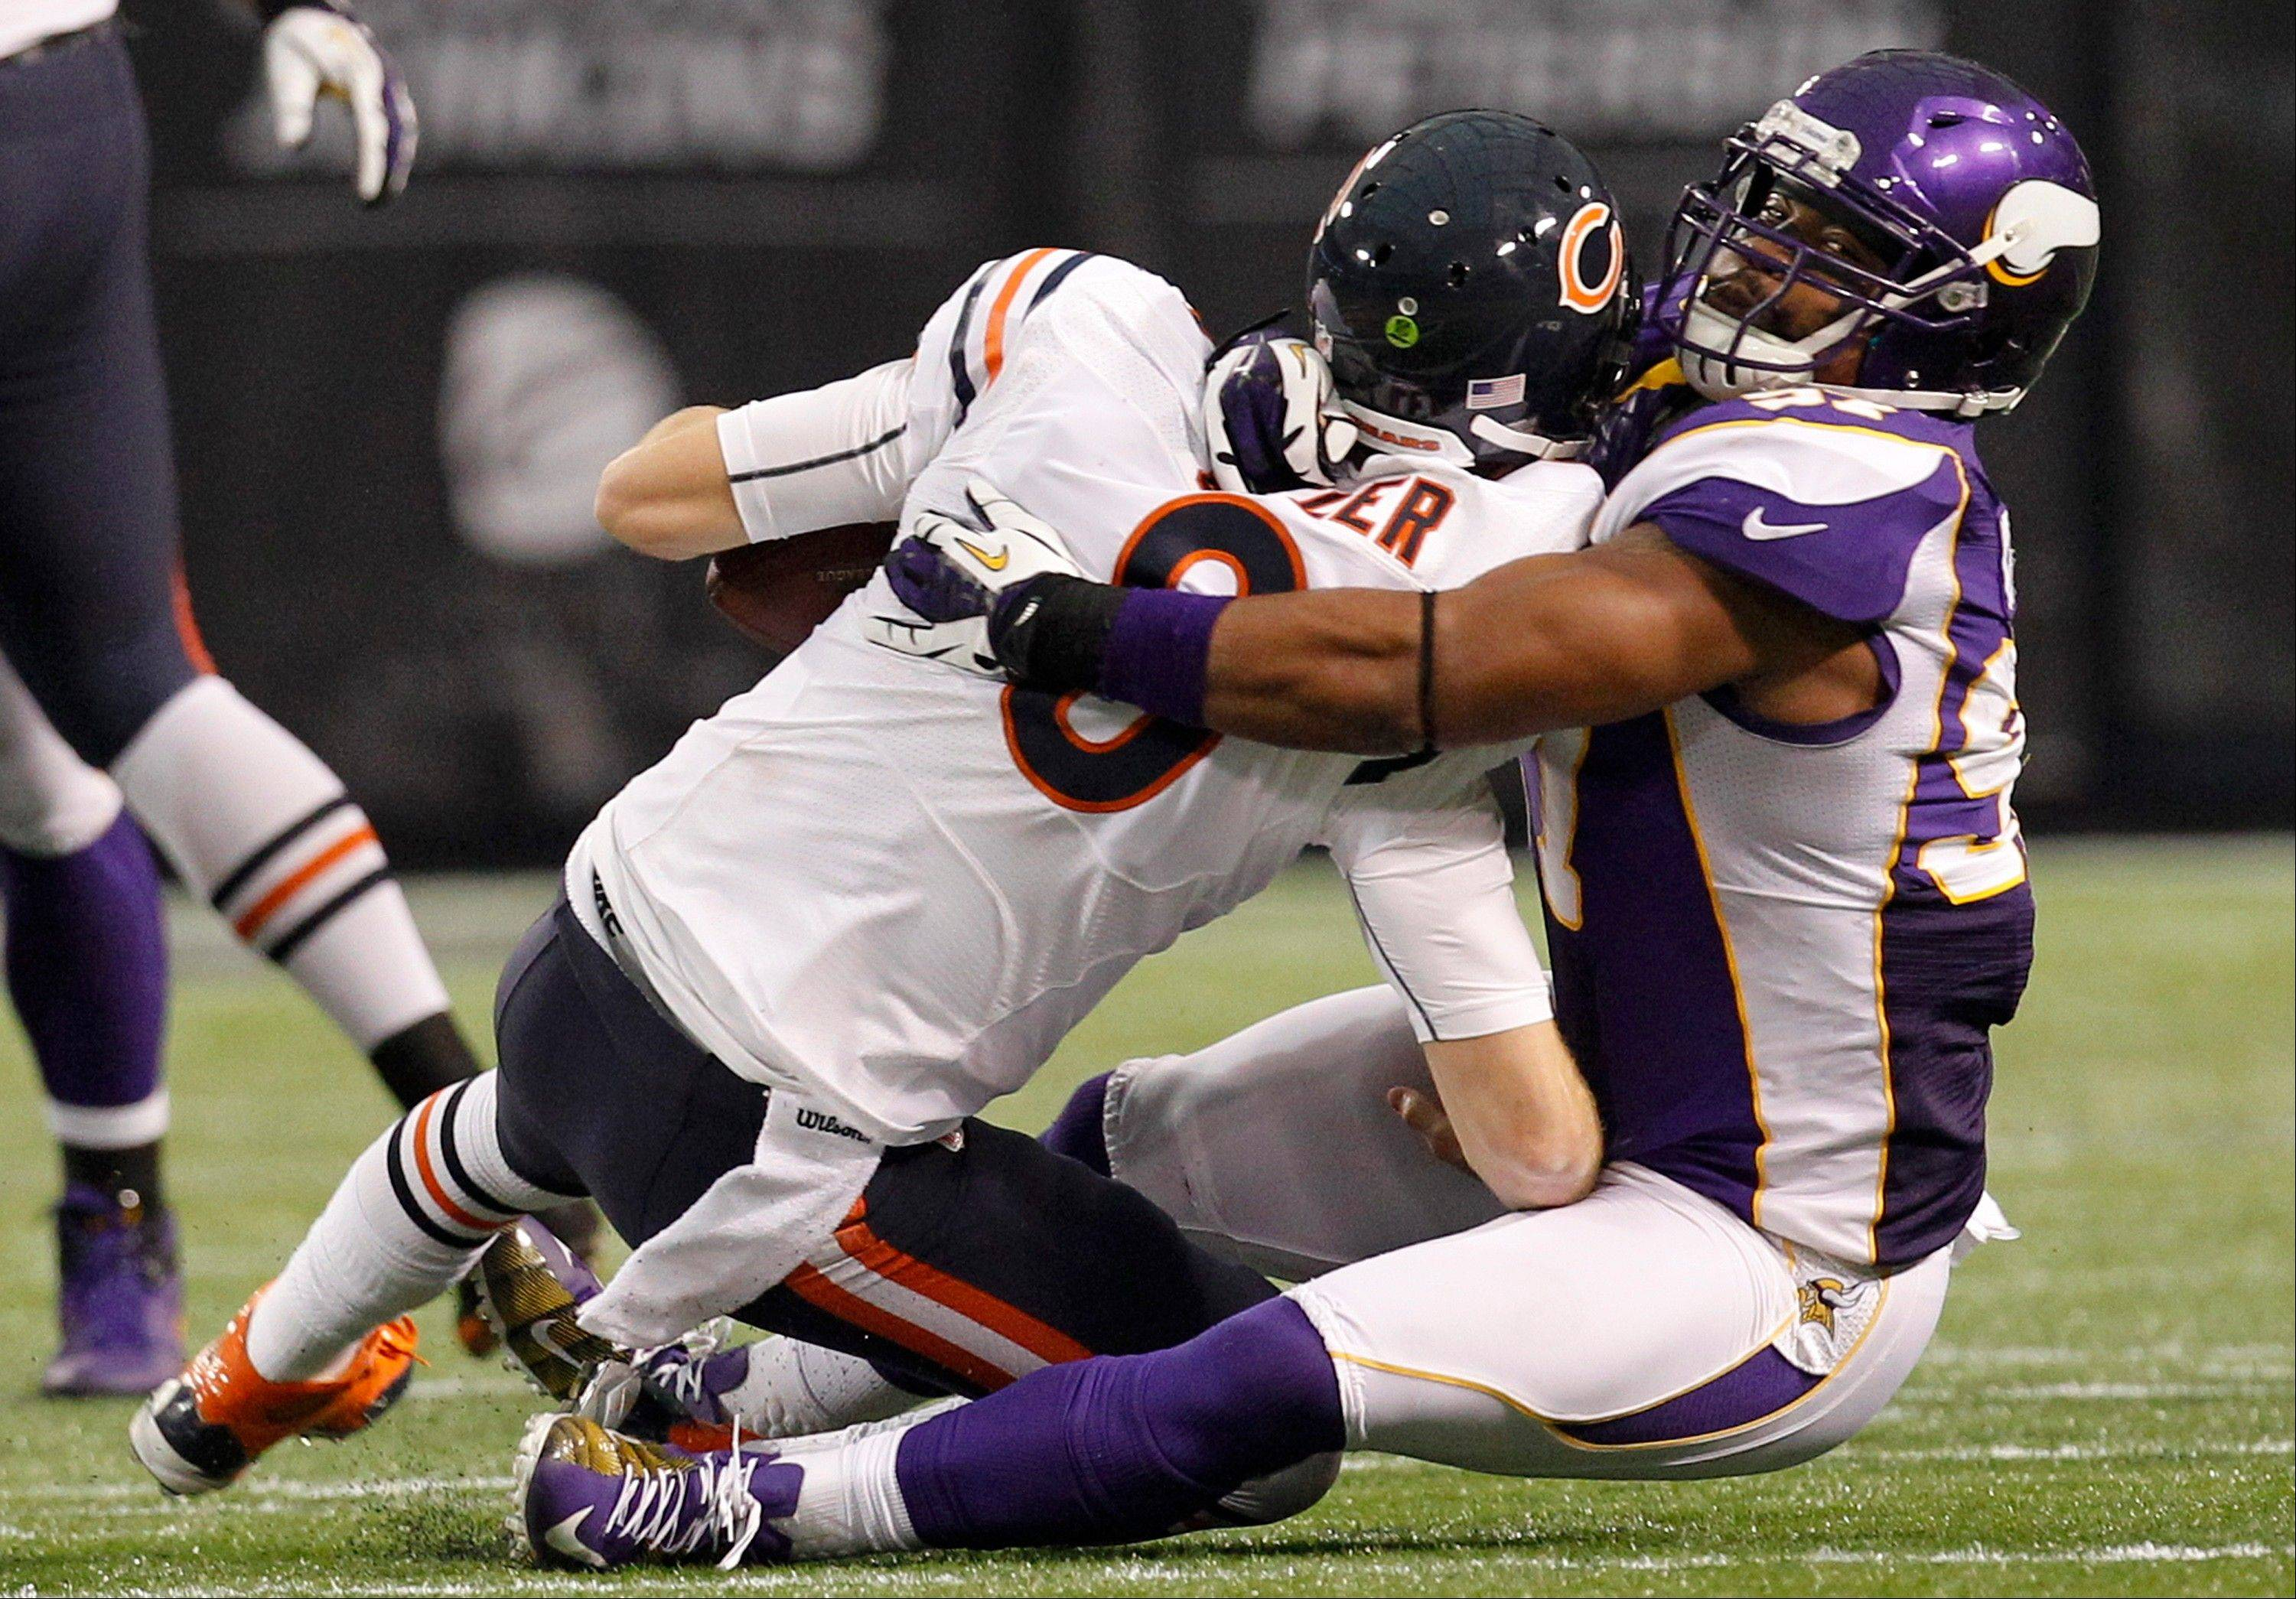 Minnesota Vikings defensive end Everson Griffen, right, sacks Chicago Bears quarterback Jay Cutler during the first half.